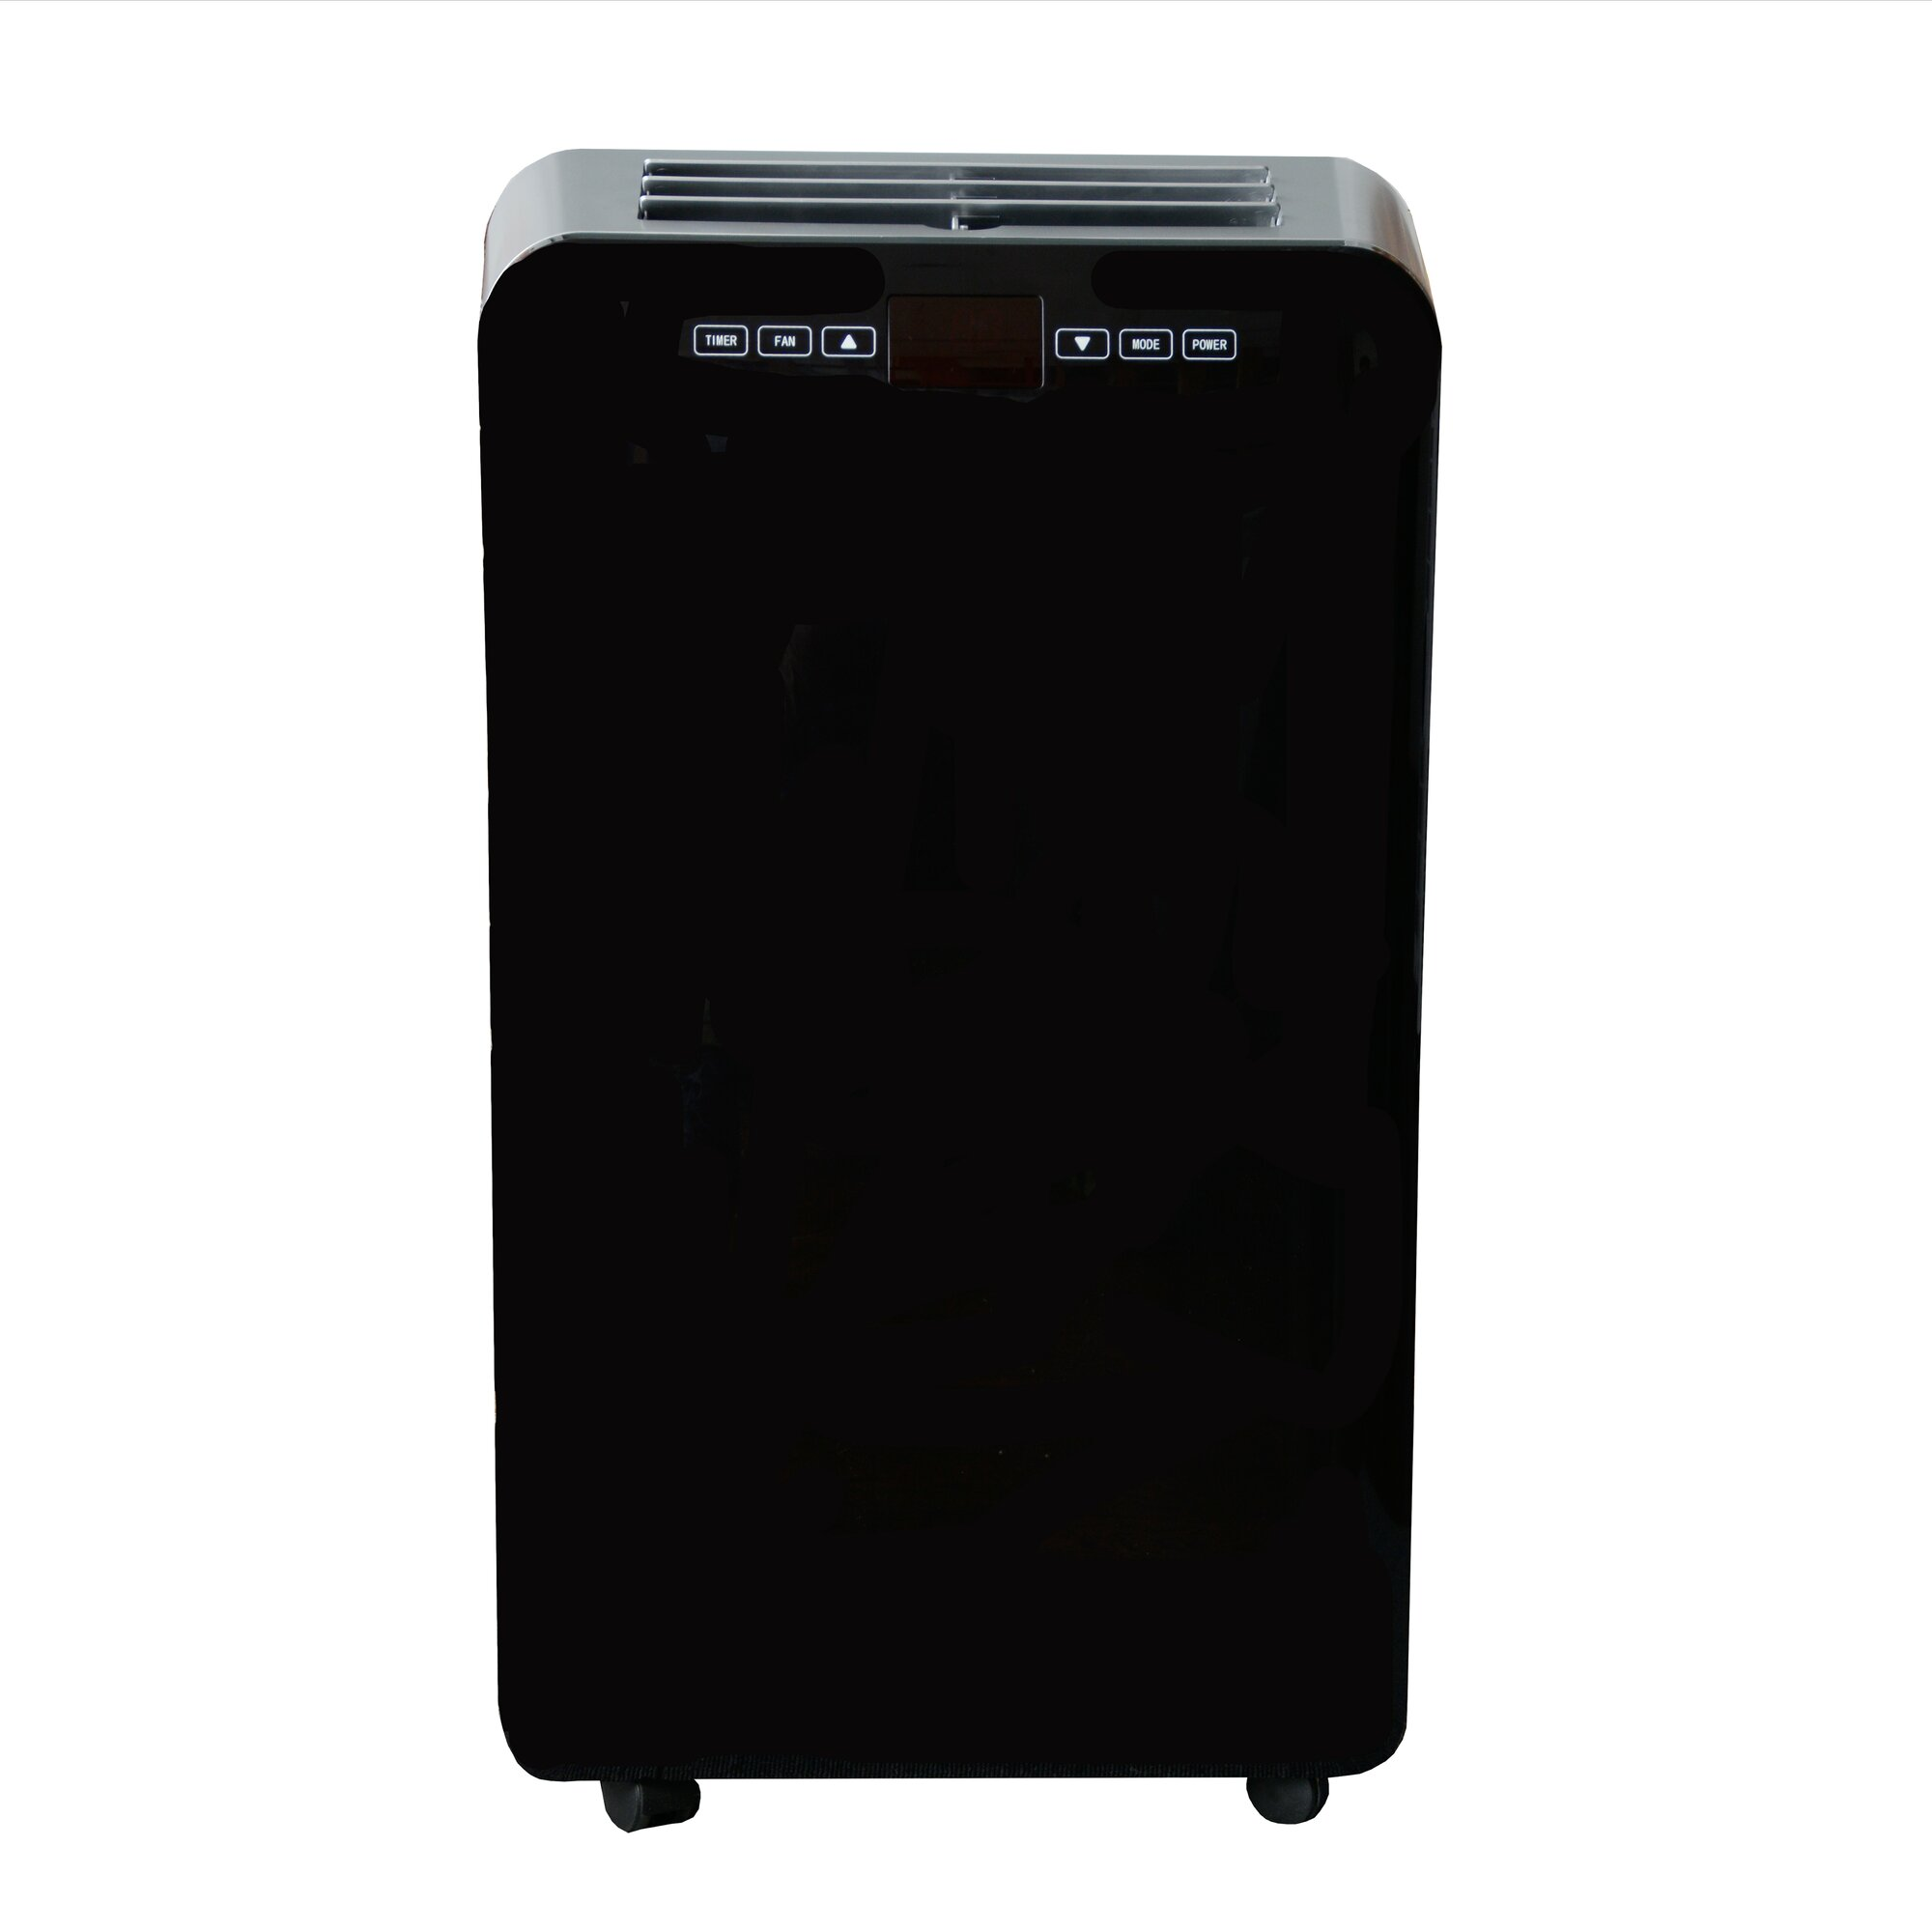 #695D54 CCH Products 12 000 BTU Portable Air Conditioner With  Highest Rated 13436 Portable Air Conditioner Brands img with 2000x2000 px on helpvideos.info - Air Conditioners, Air Coolers and more